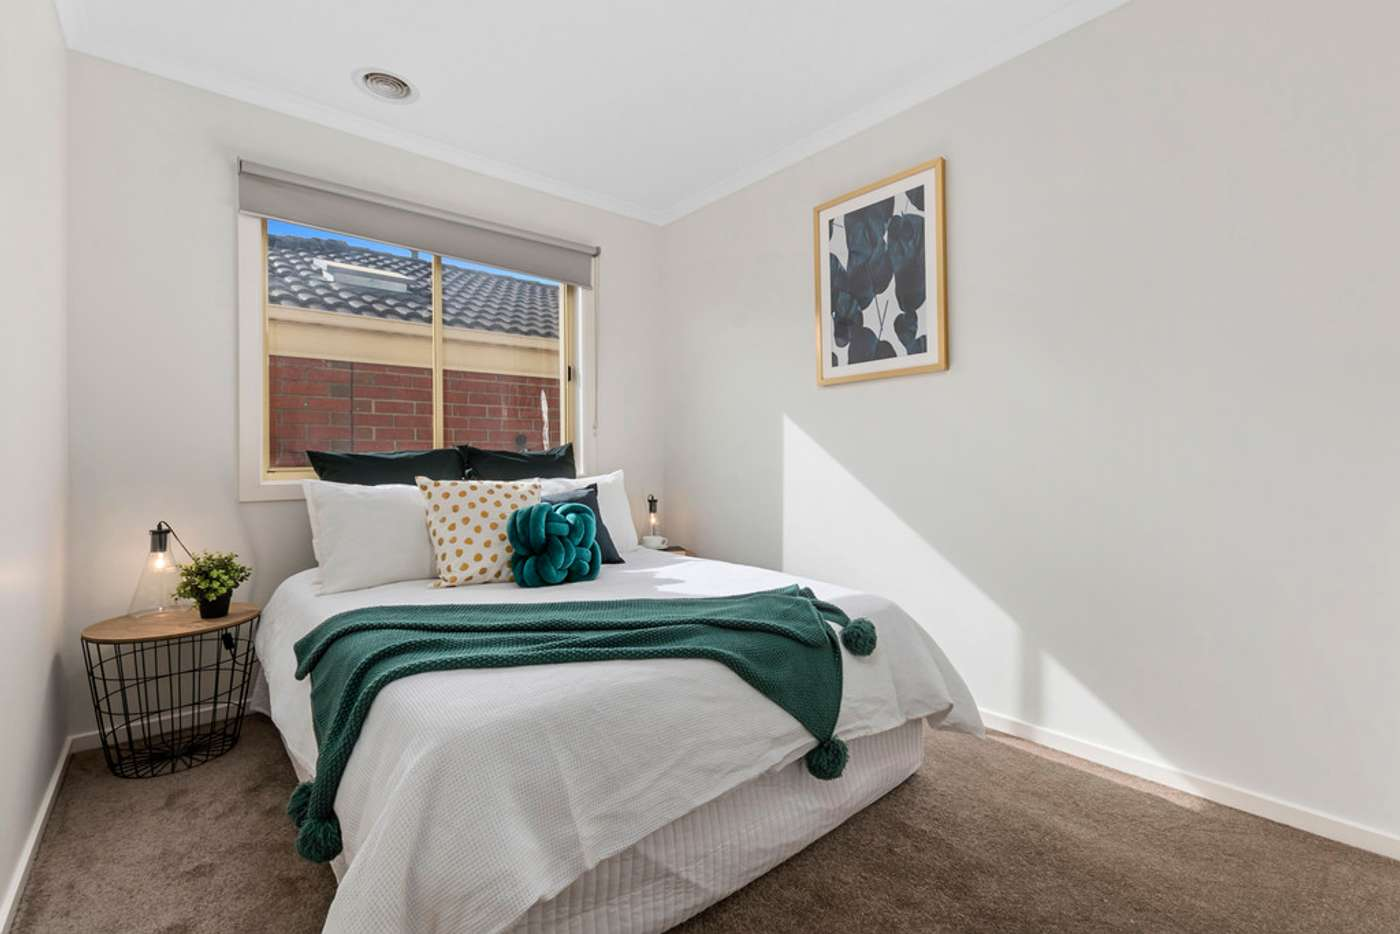 Sixth view of Homely house listing, 8 Jolley Rise, Harkness VIC 3337